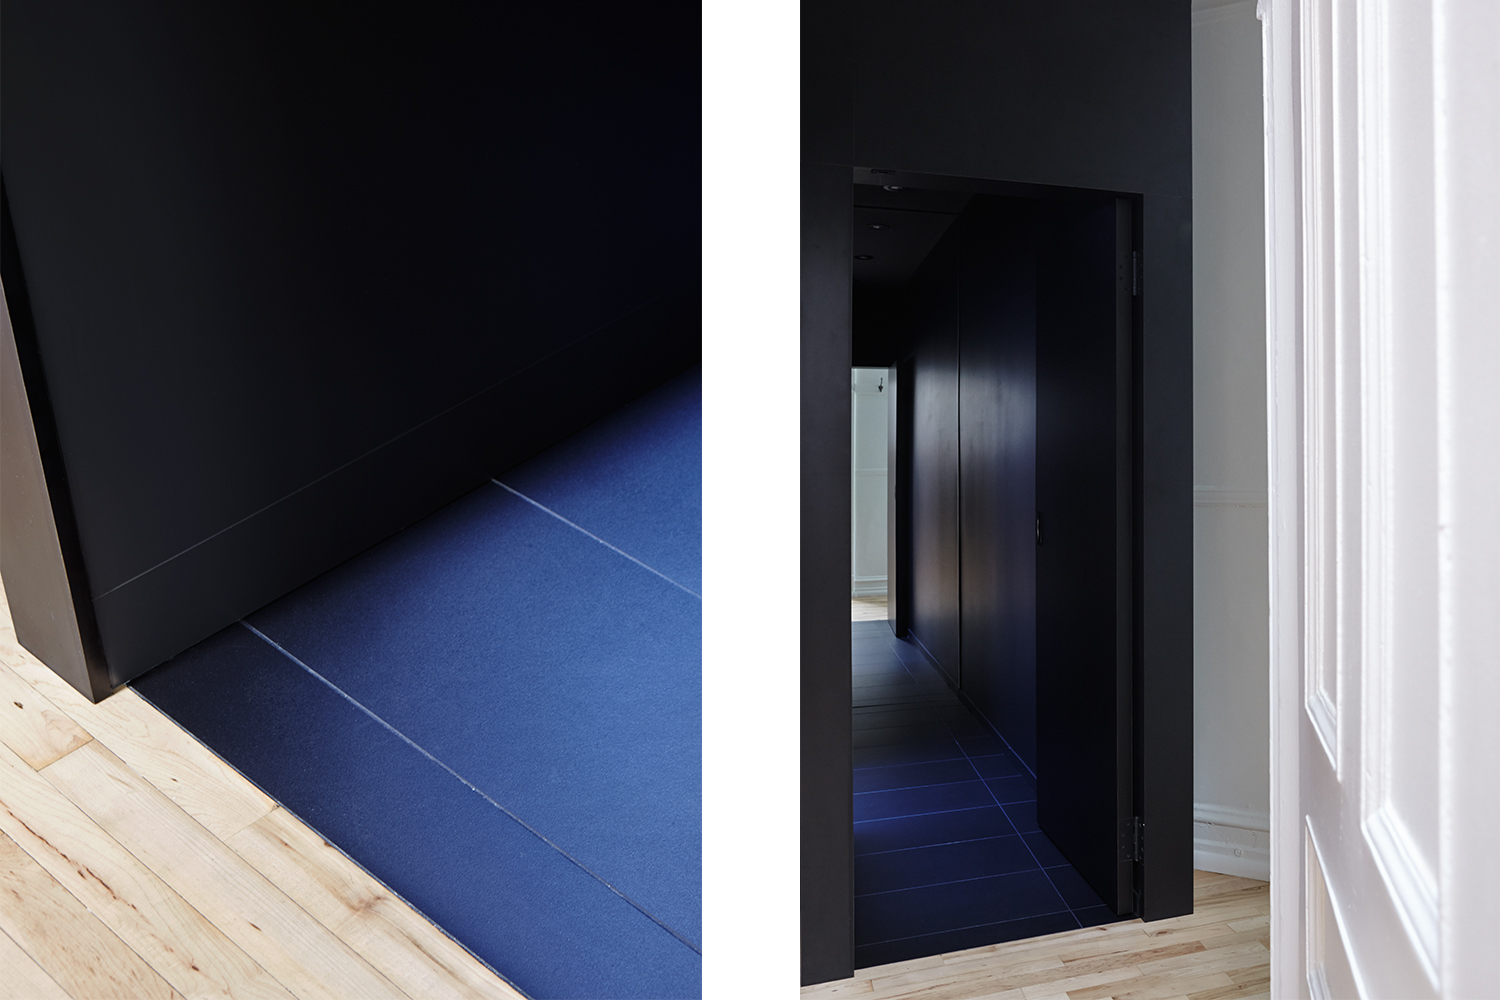 Detail of the junction of different floor finishes: wood and ceramic. Entrance door to the bathroom with large mirror at the bottom. Independent black volume